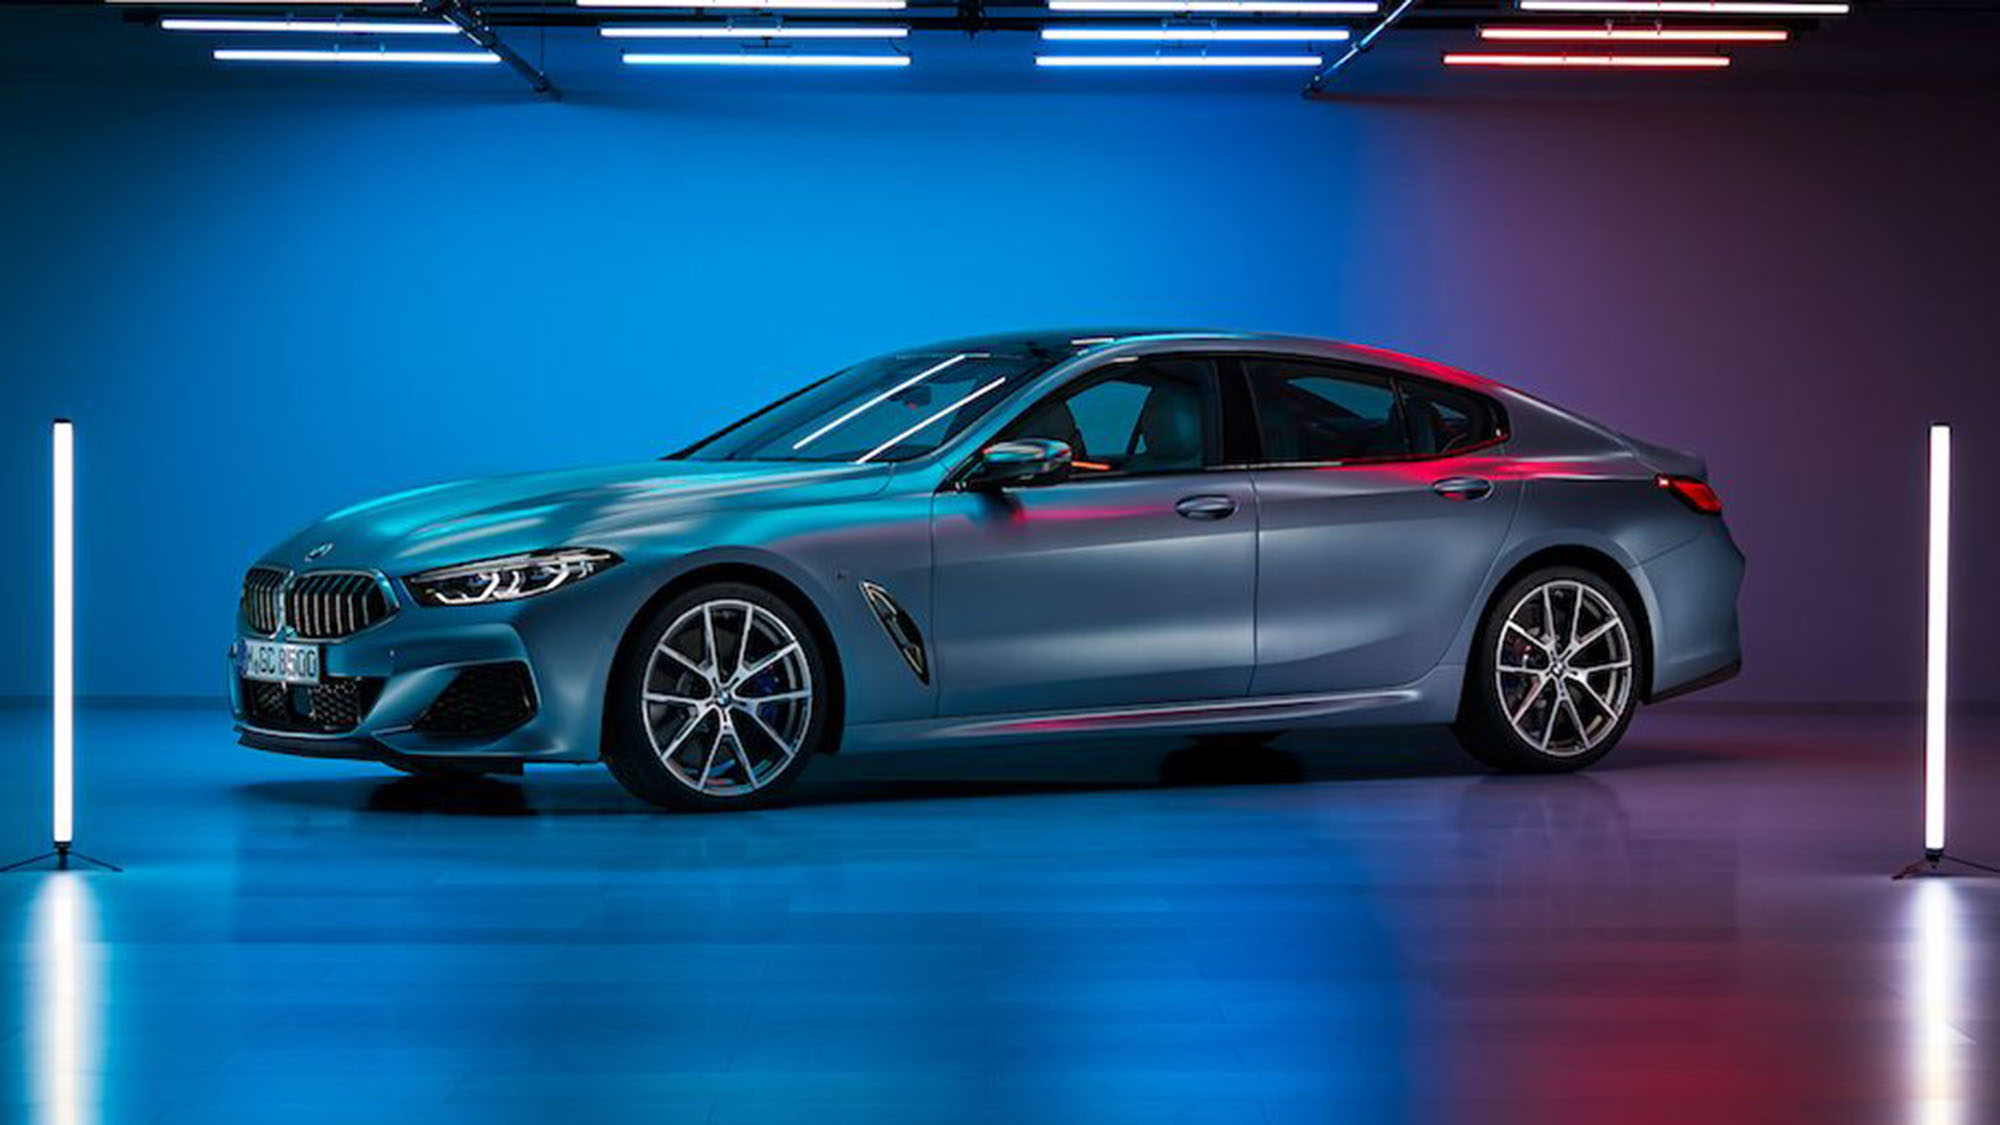 2020 Bmw 8 Series Gran Coupe Leaked Caradvice